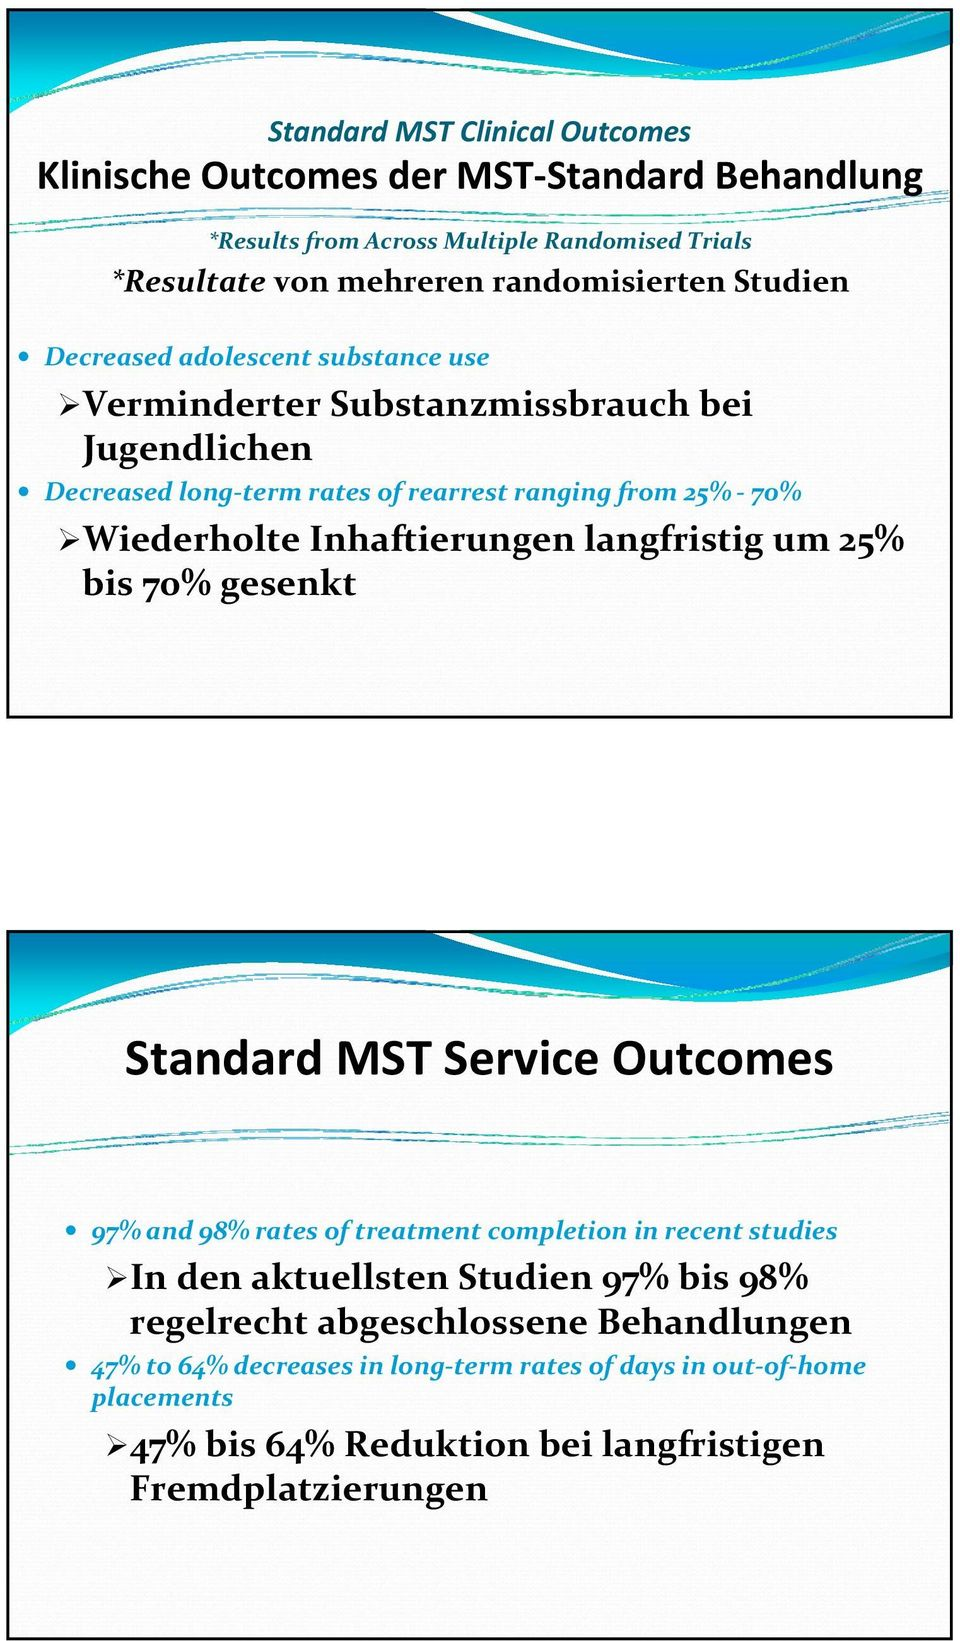 Inhaftierungen langfristig um 25% bis 70% gesenkt Standard MST Service Outcomes 97% and 98% rates of treatment completion in recent studies In den aktuellsten Studien